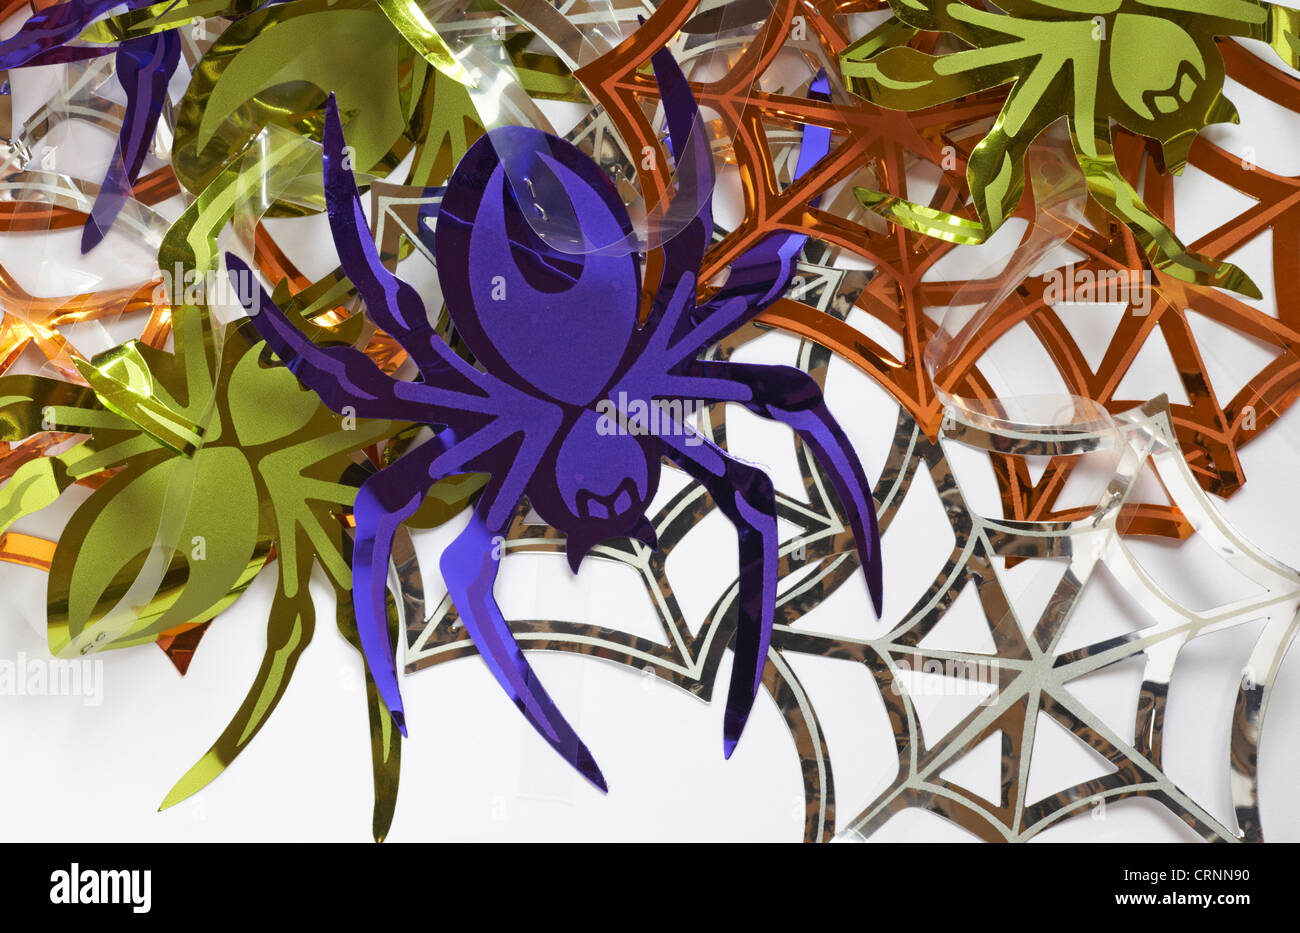 shiny spiders and spider webs decorations for halloween set on white background - Stock Image